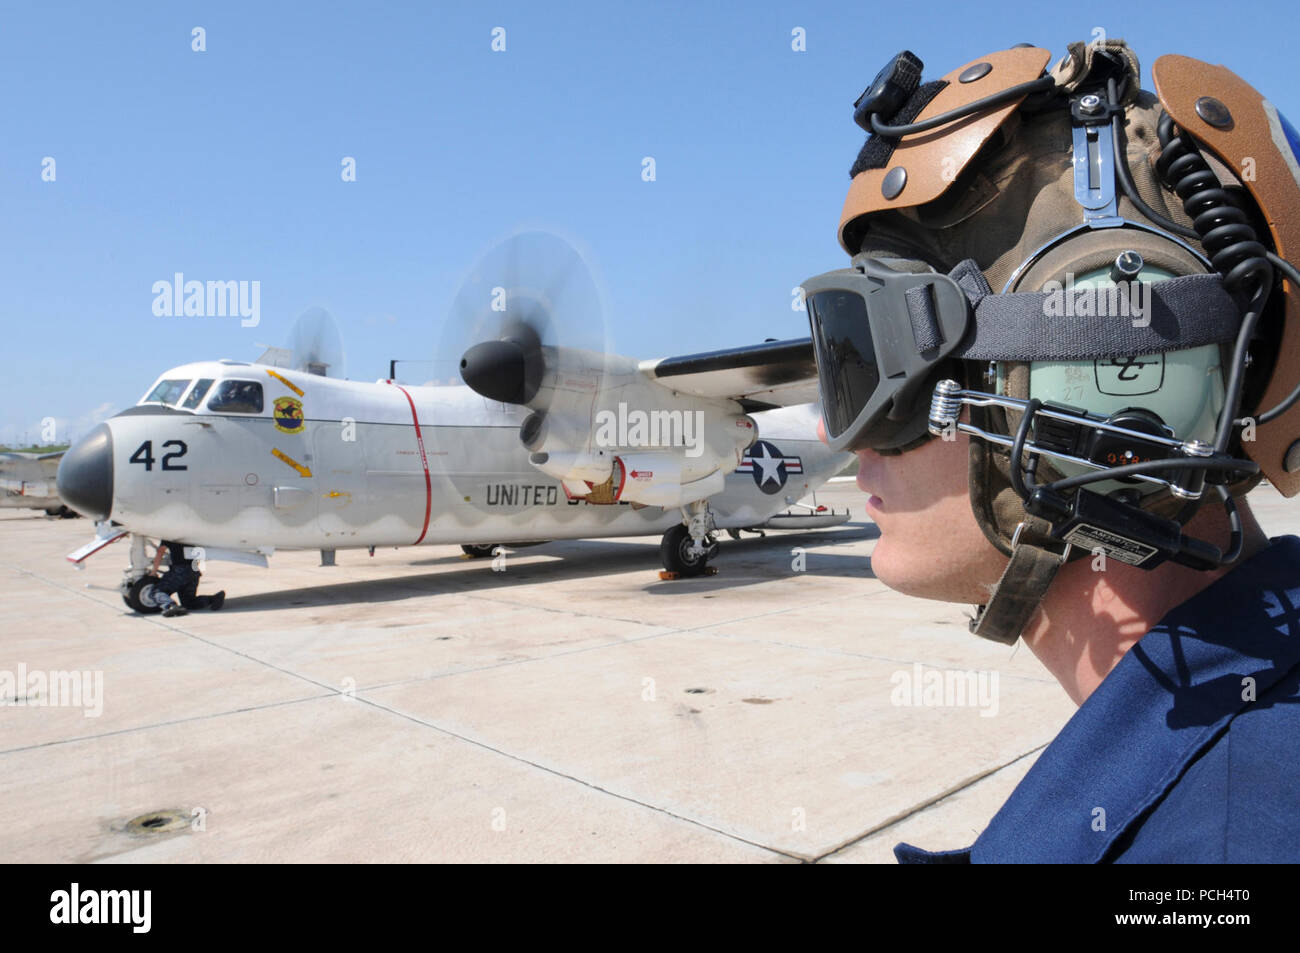 Navy Airman Michael Megyesi, an aviation electronic technician, conducts preflight communications check while a C-2 Greyhound aircraft prepares for departure from U.S. Naval Station Guantanamo Bay, Jan. 24. The aircraft is flying humanitarian assistance to Haiti in support of Operation Unified Response. Stock Photo